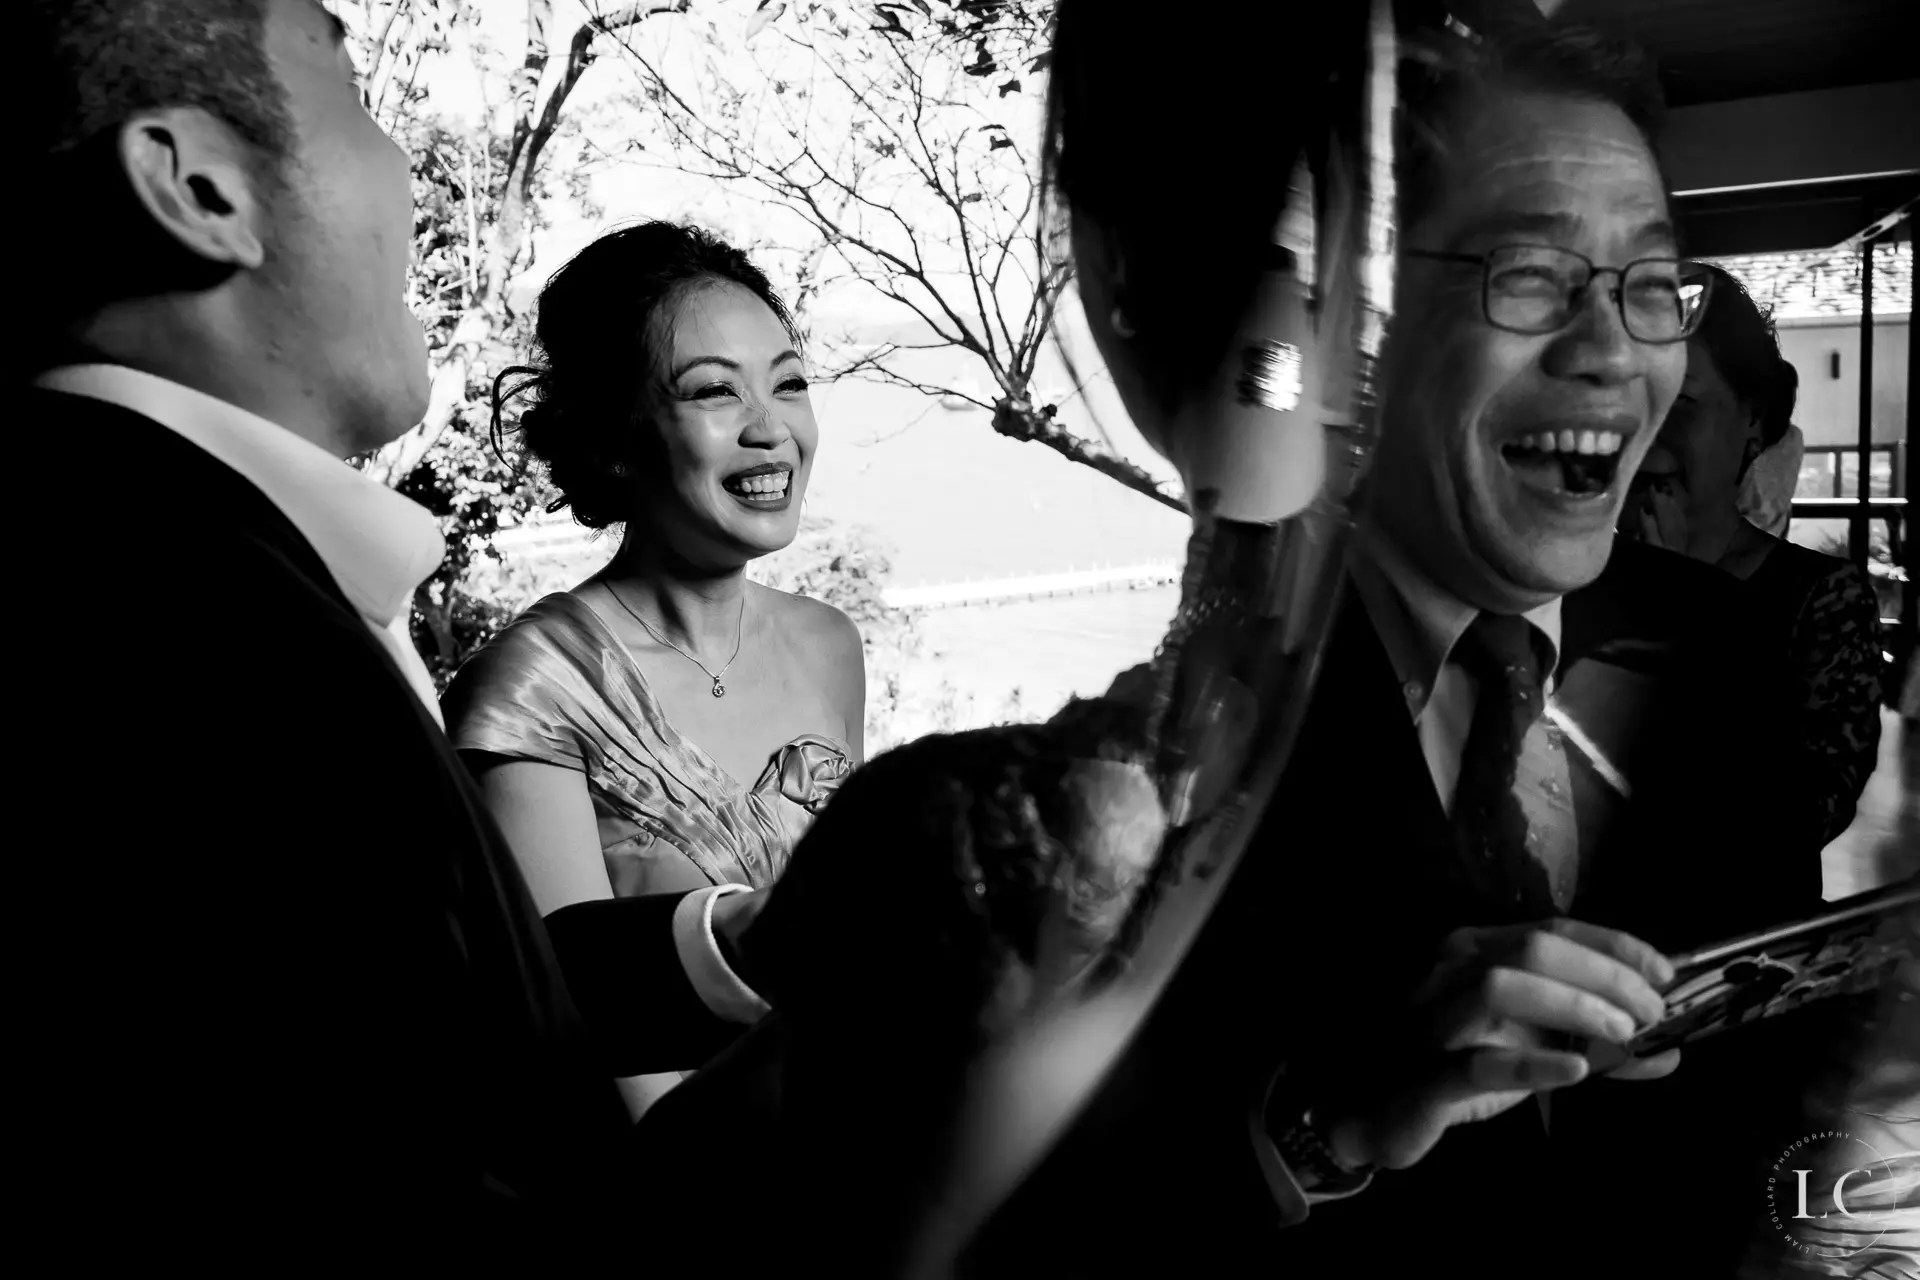 Smiling guests at a wedding